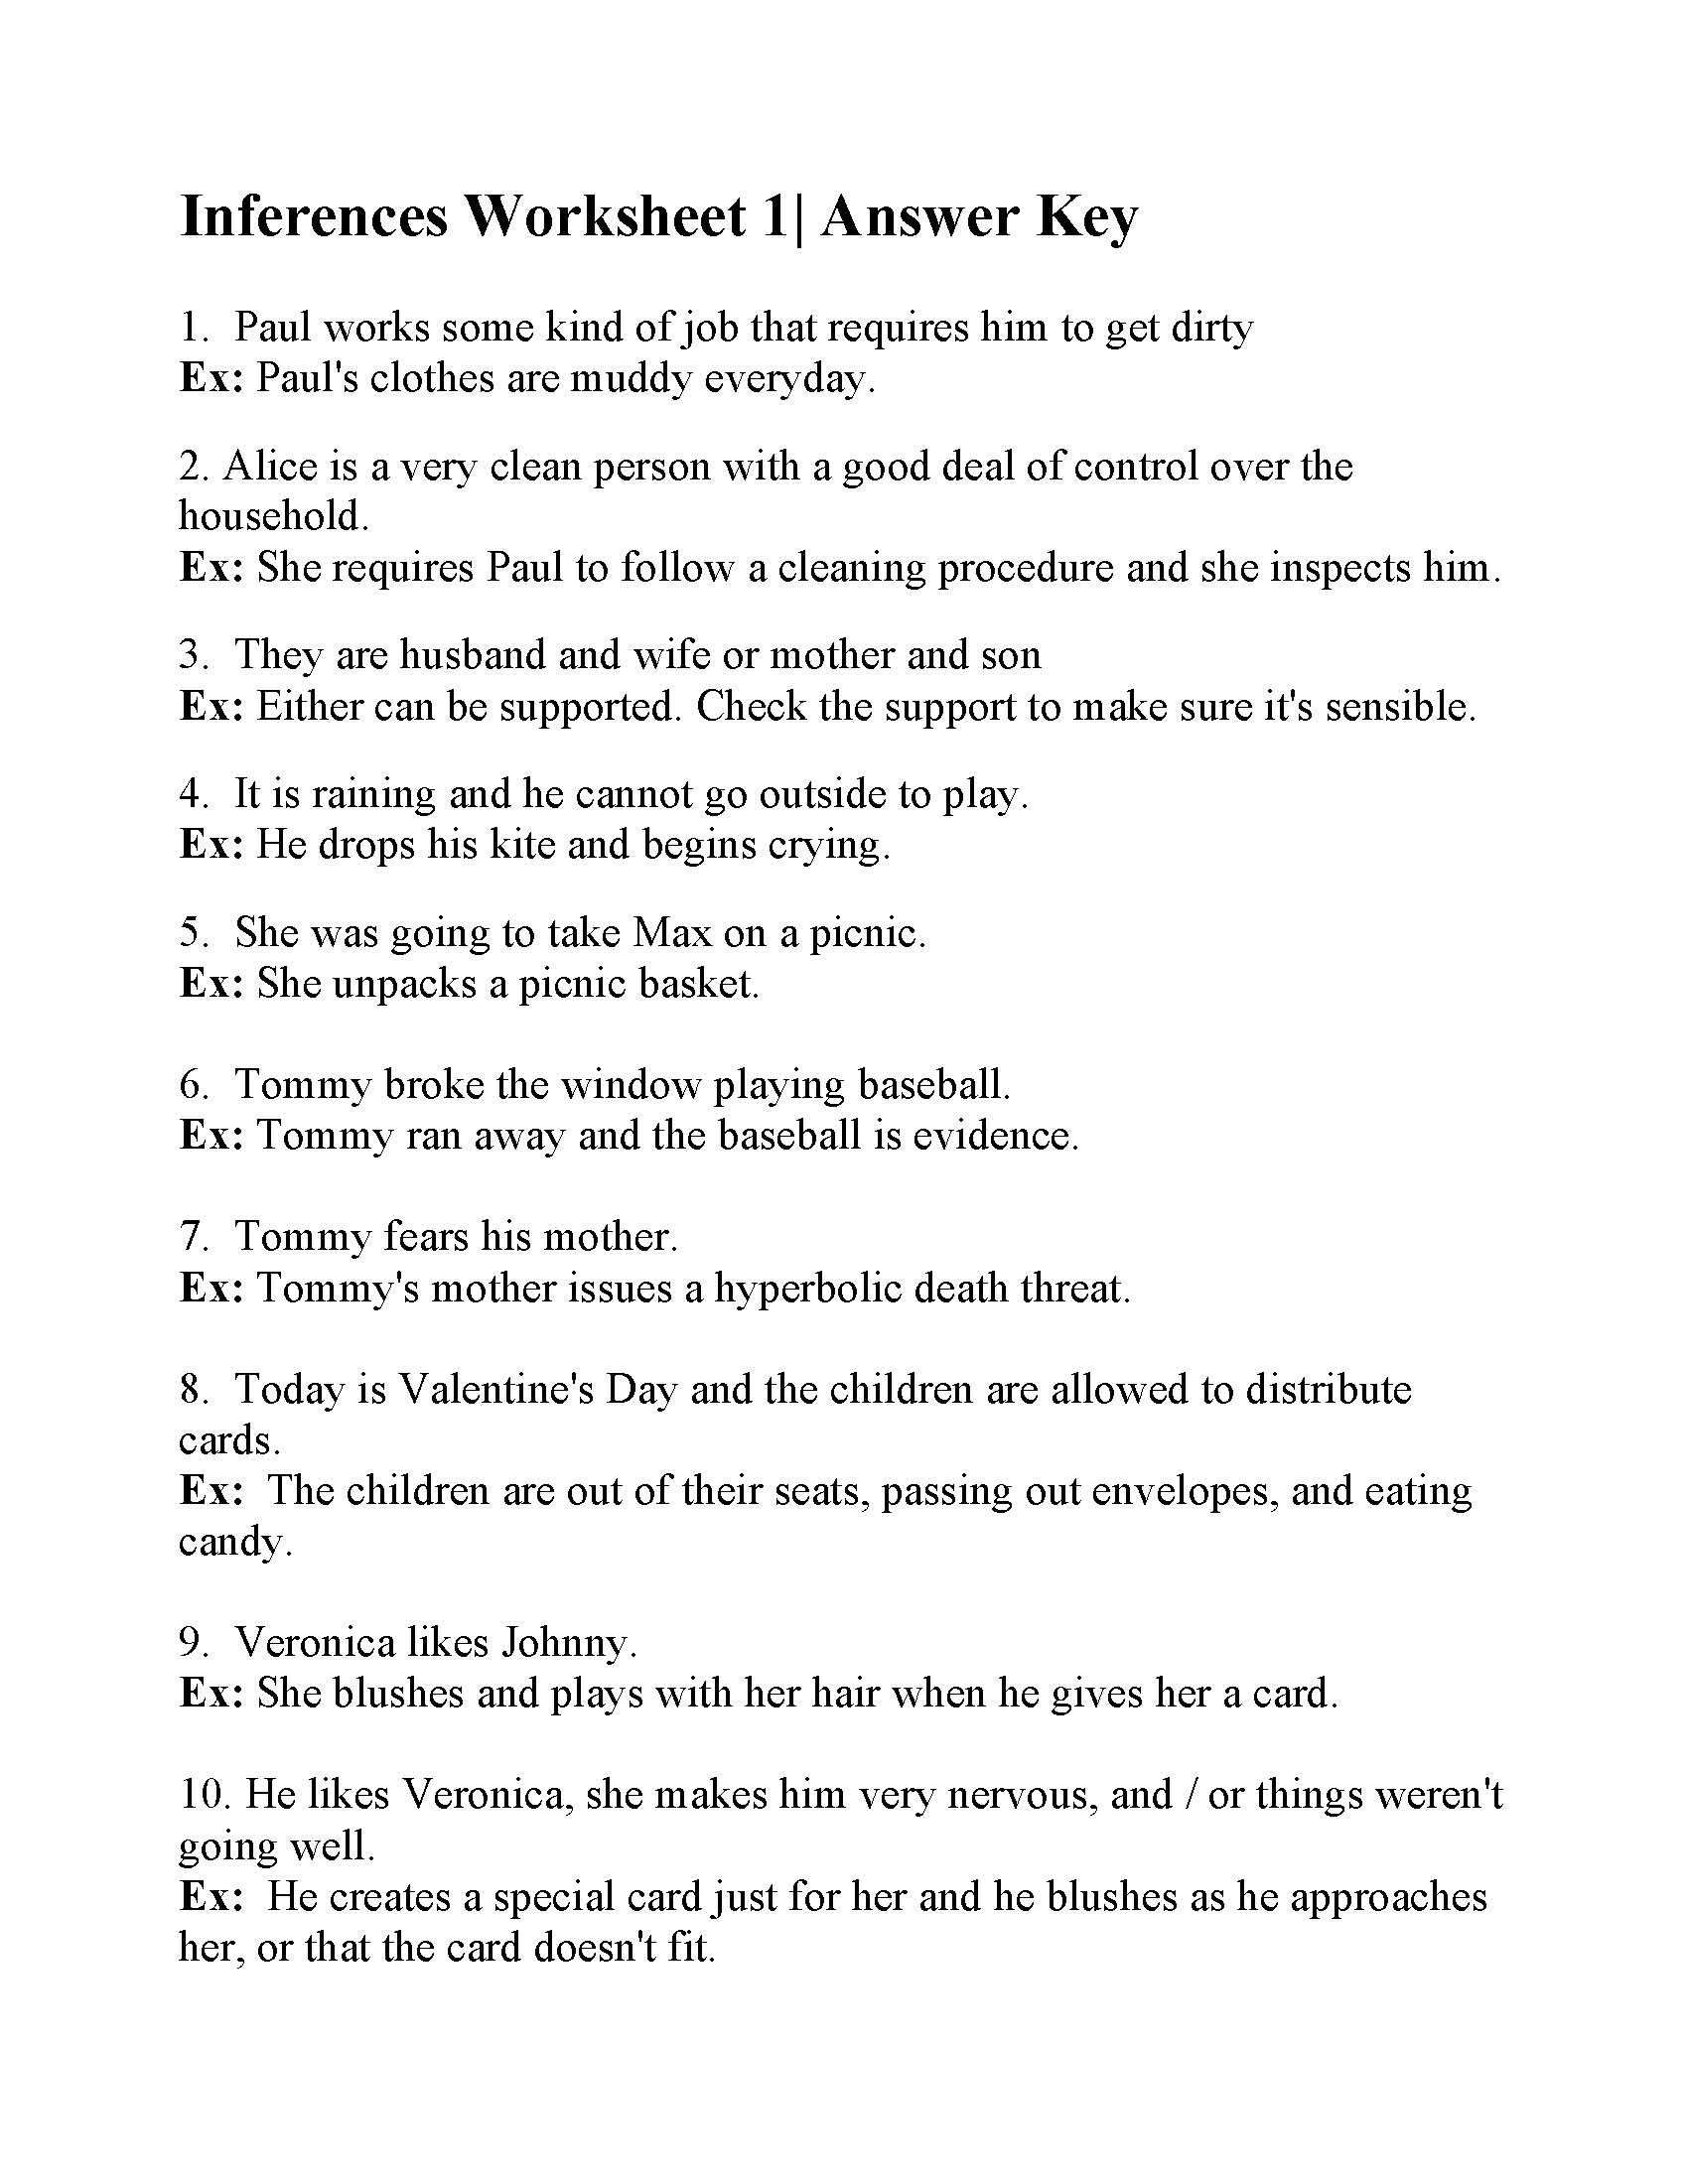 medium resolution of This is the answer key for the Inferences Worksheet 1.   Science worksheets